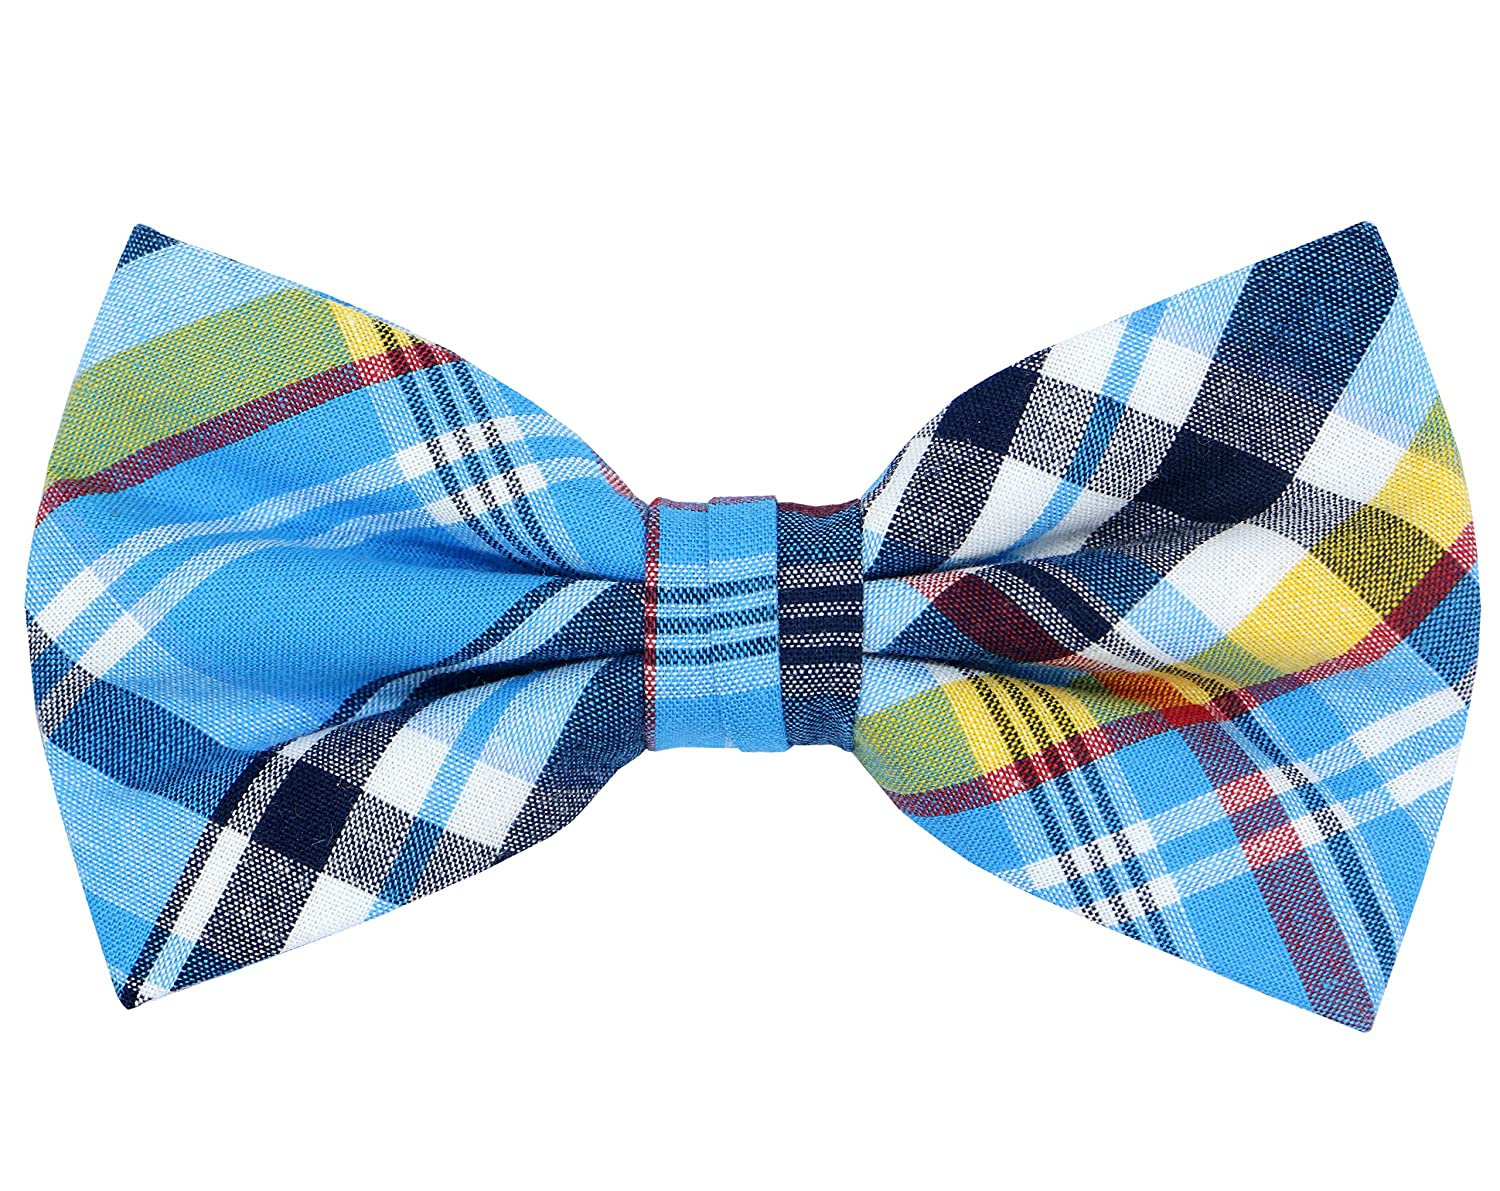 Men's Pre-Tied Bow Tie Adjustable Tuxedo Bowtie for Wedding Party, By OCIA OCIAM58